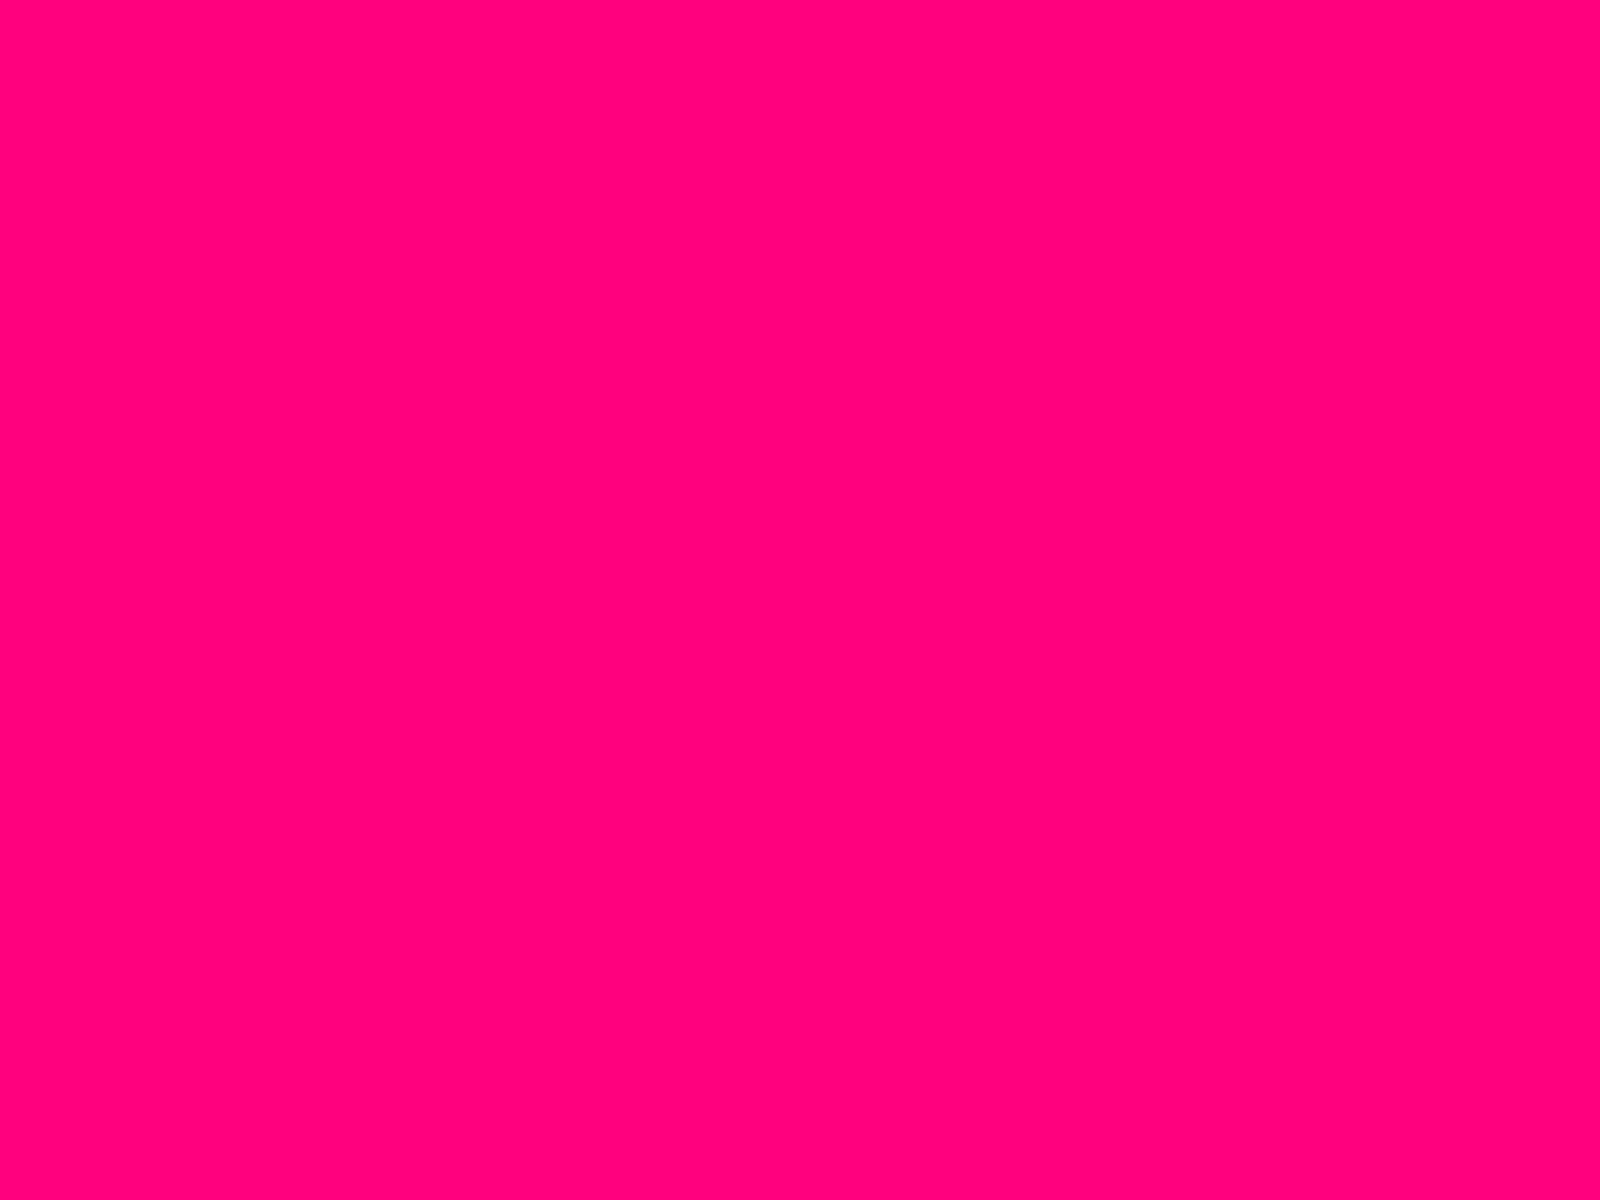 1600x1200 Bright Pink Solid Color Background